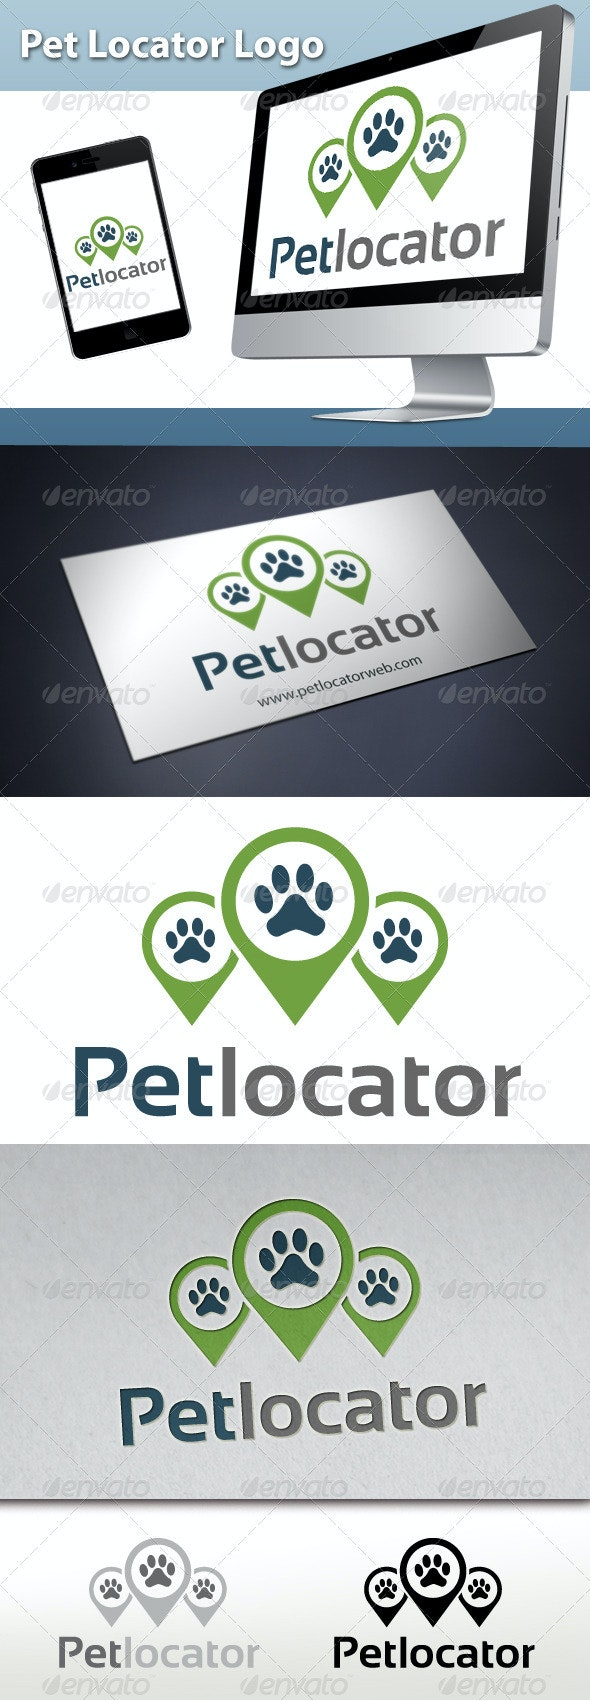 Pet Locator Logo - Animals Logo Templates